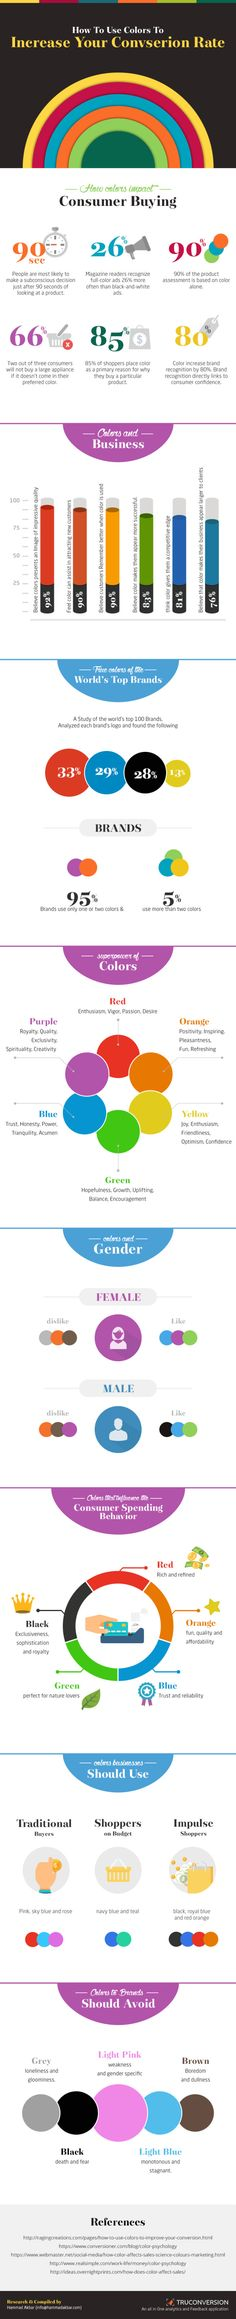 #Psychologie der Farben - So erhöhen Sie ihre Conversion Rate  How to use colors to increase your #conversion rate